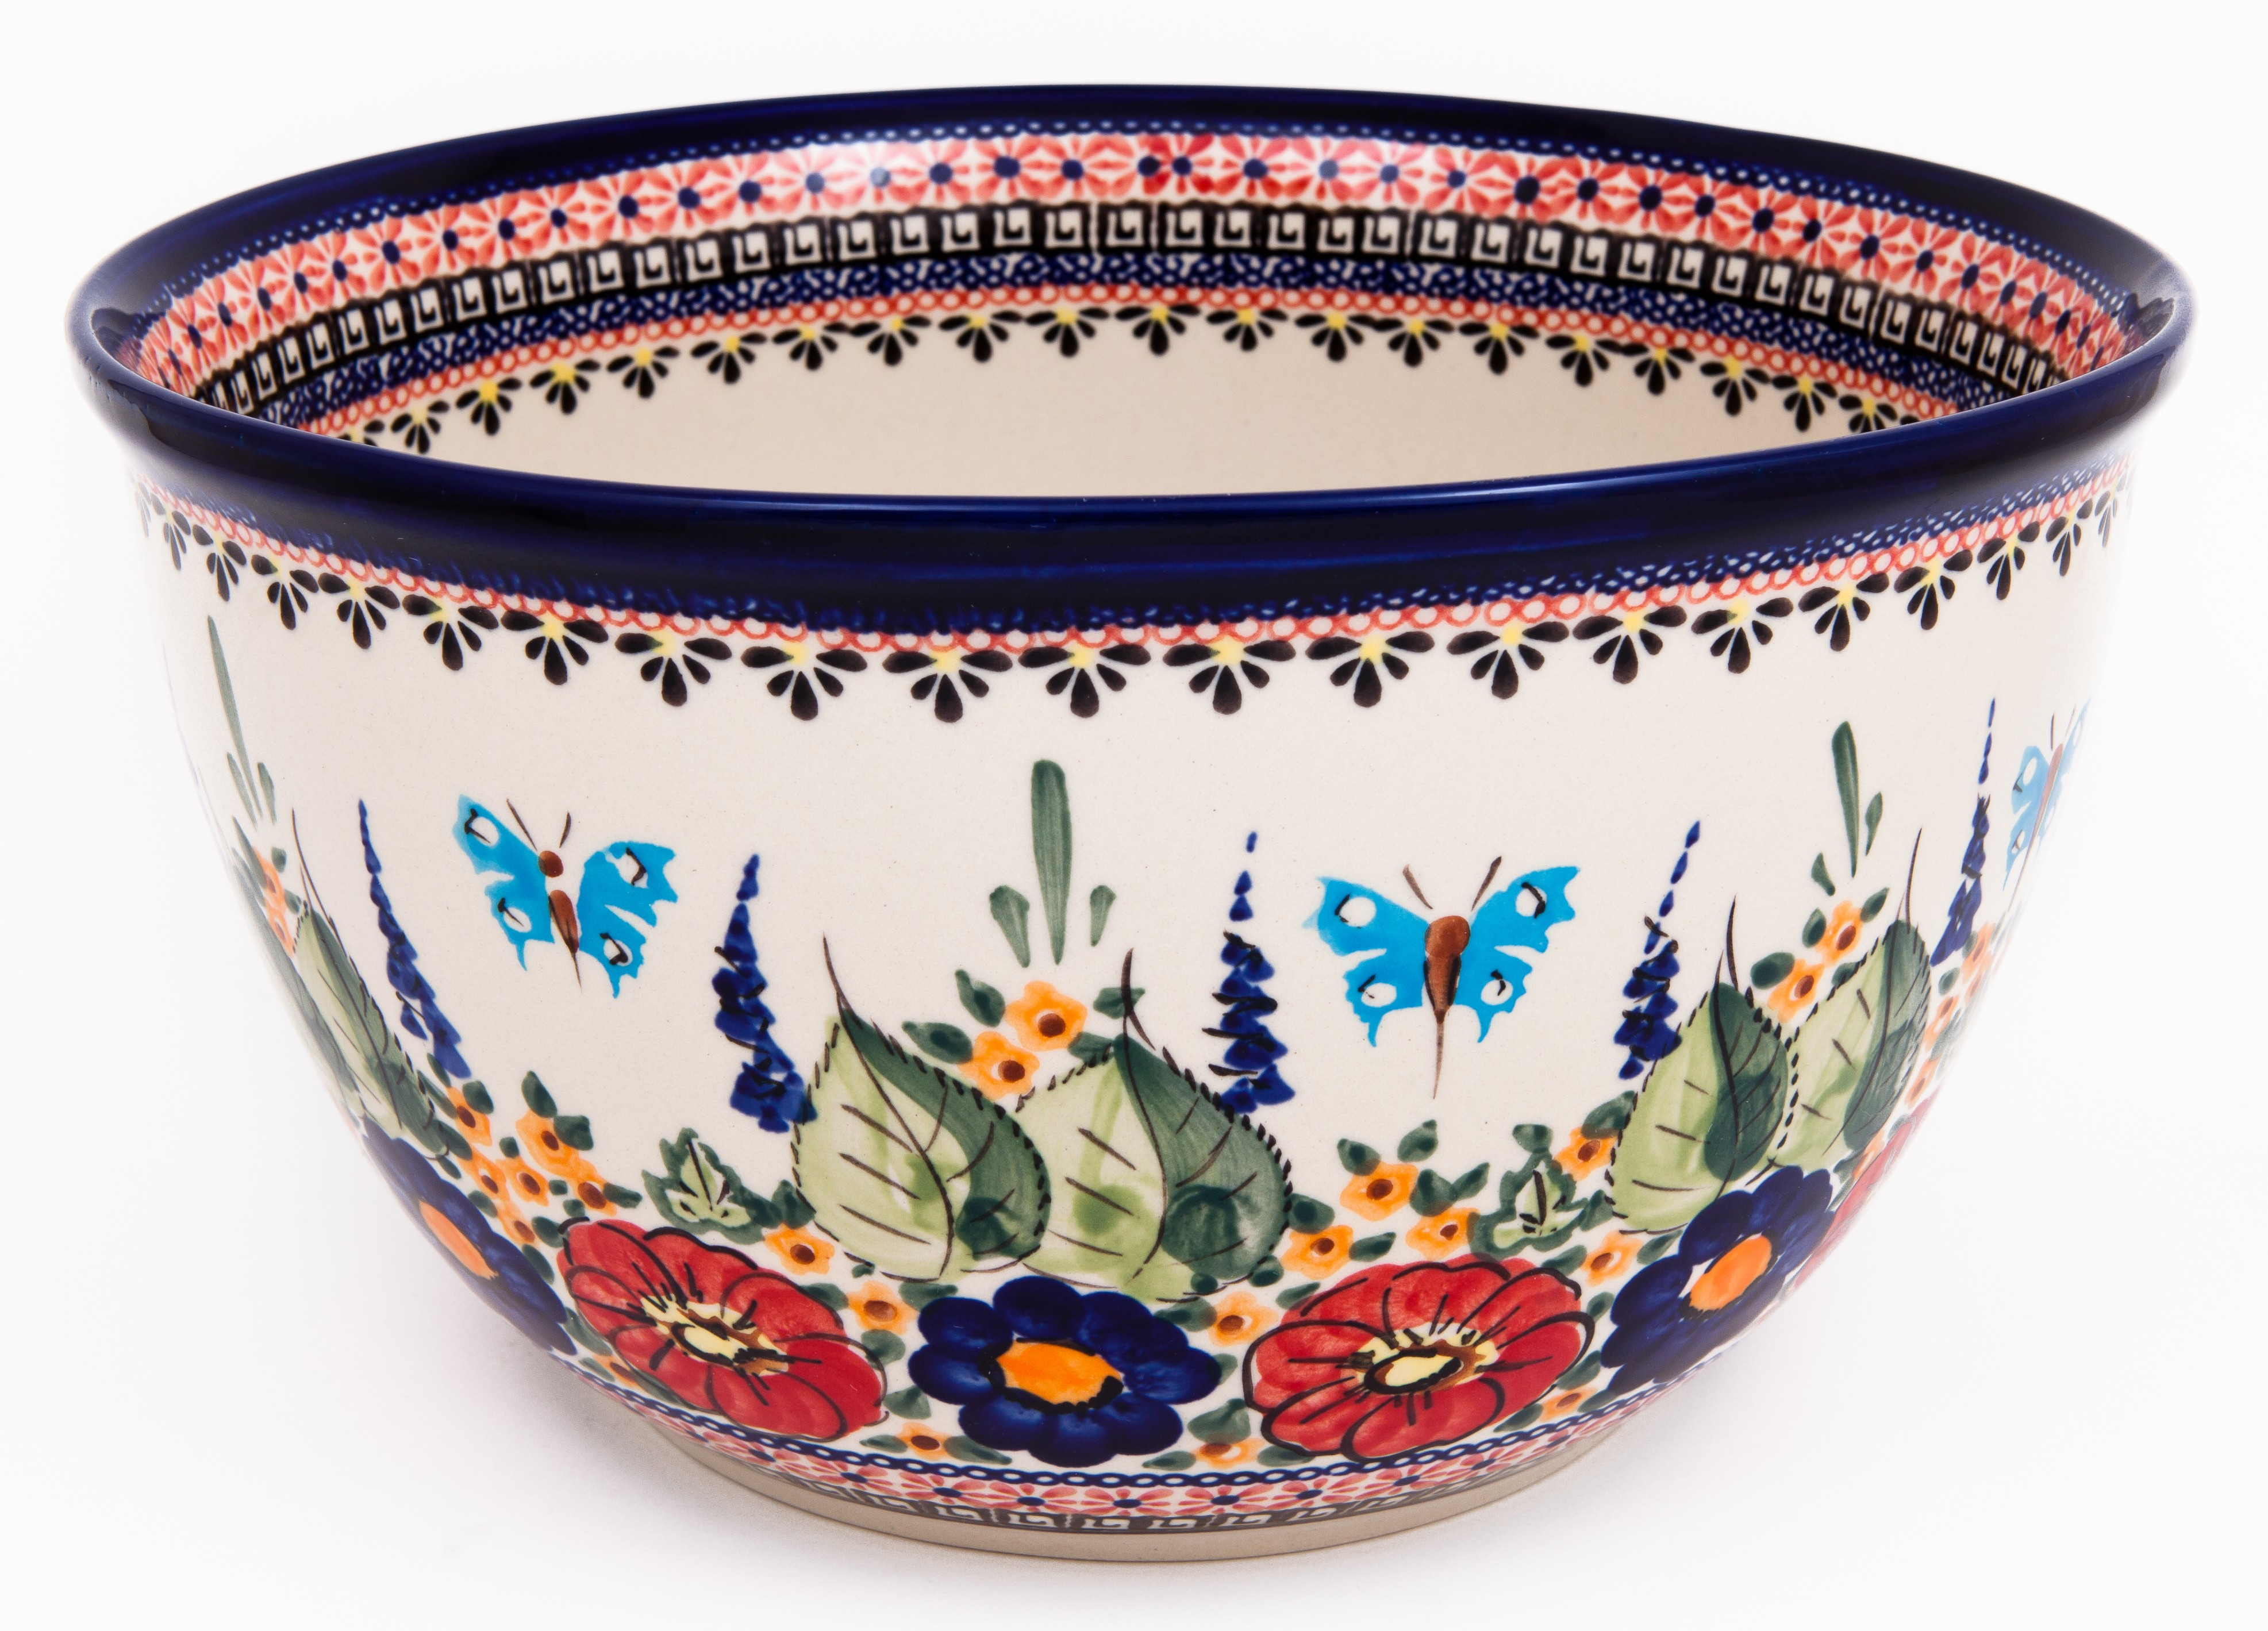 Polish Pottery BUTTERFLY MERRY MAKING 14-Cup Stoneware Mixing Bowl   UNIKAT